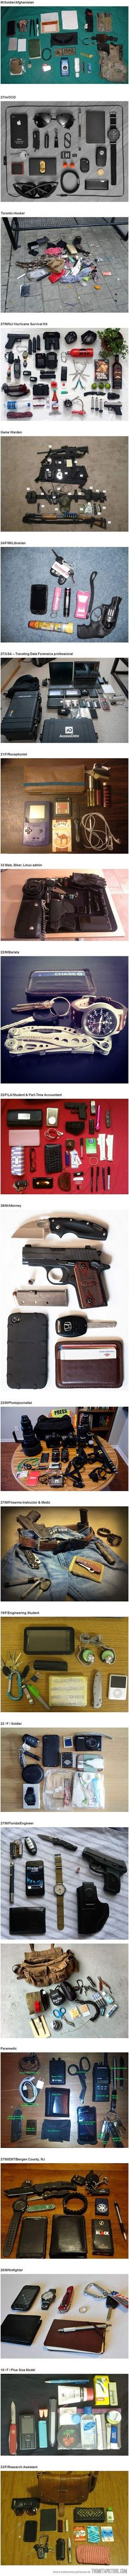 Things people carry…every day carries.